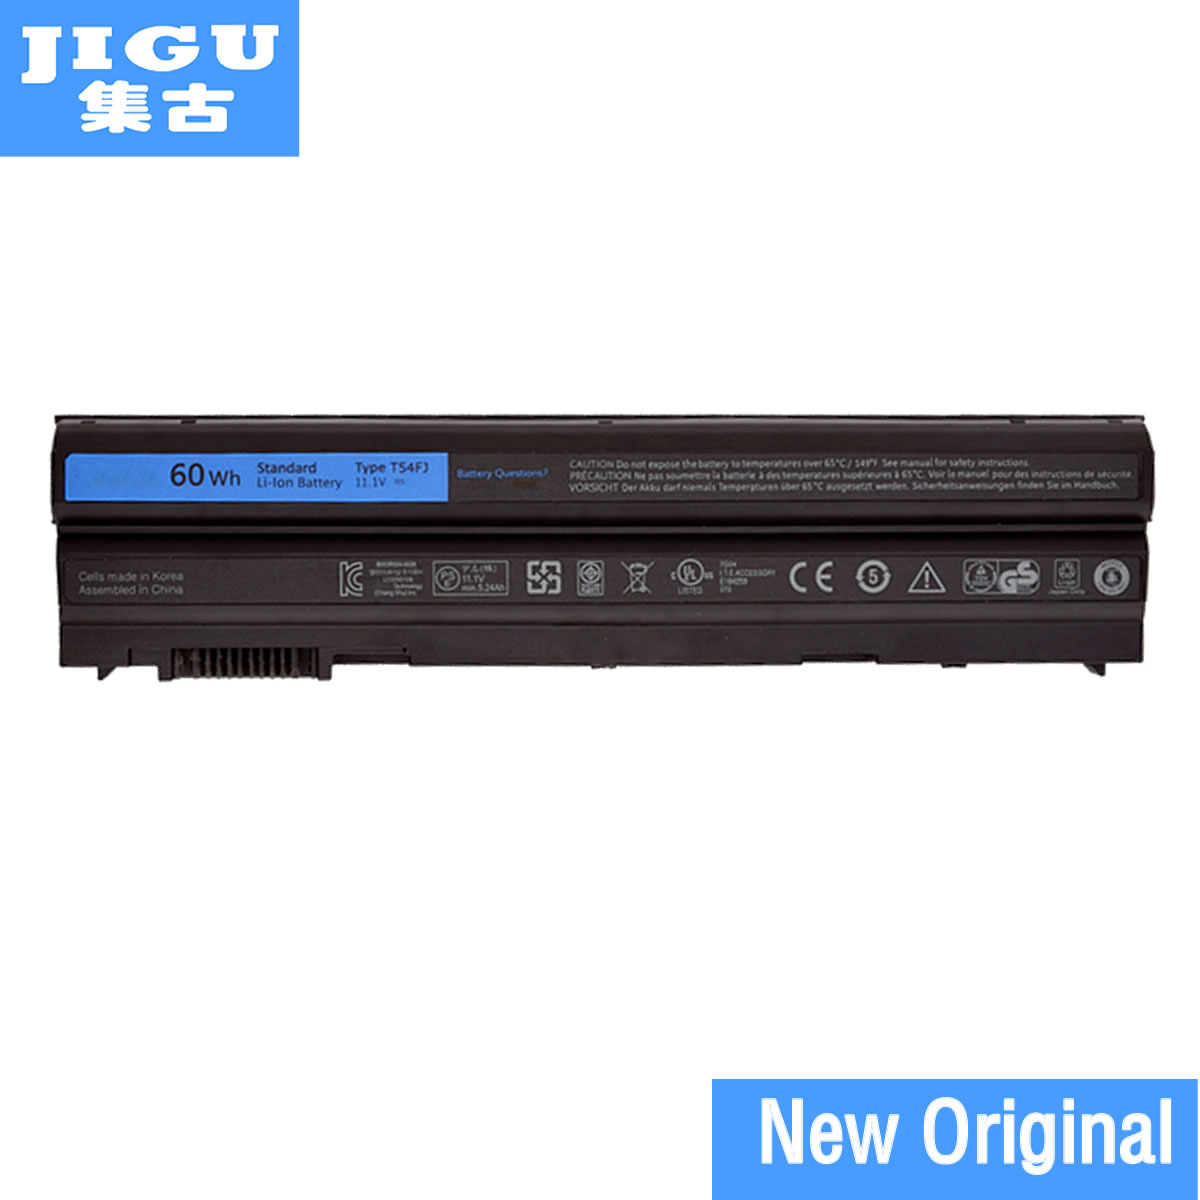 JIGU 60WH Original T54FJ Laptop Battery For DELL Latitude <font><b>E5420</b></font> E5430 E5520 E5530 E6420 E6430 E6520 T54F3 8858X 5525 5720 7420 image